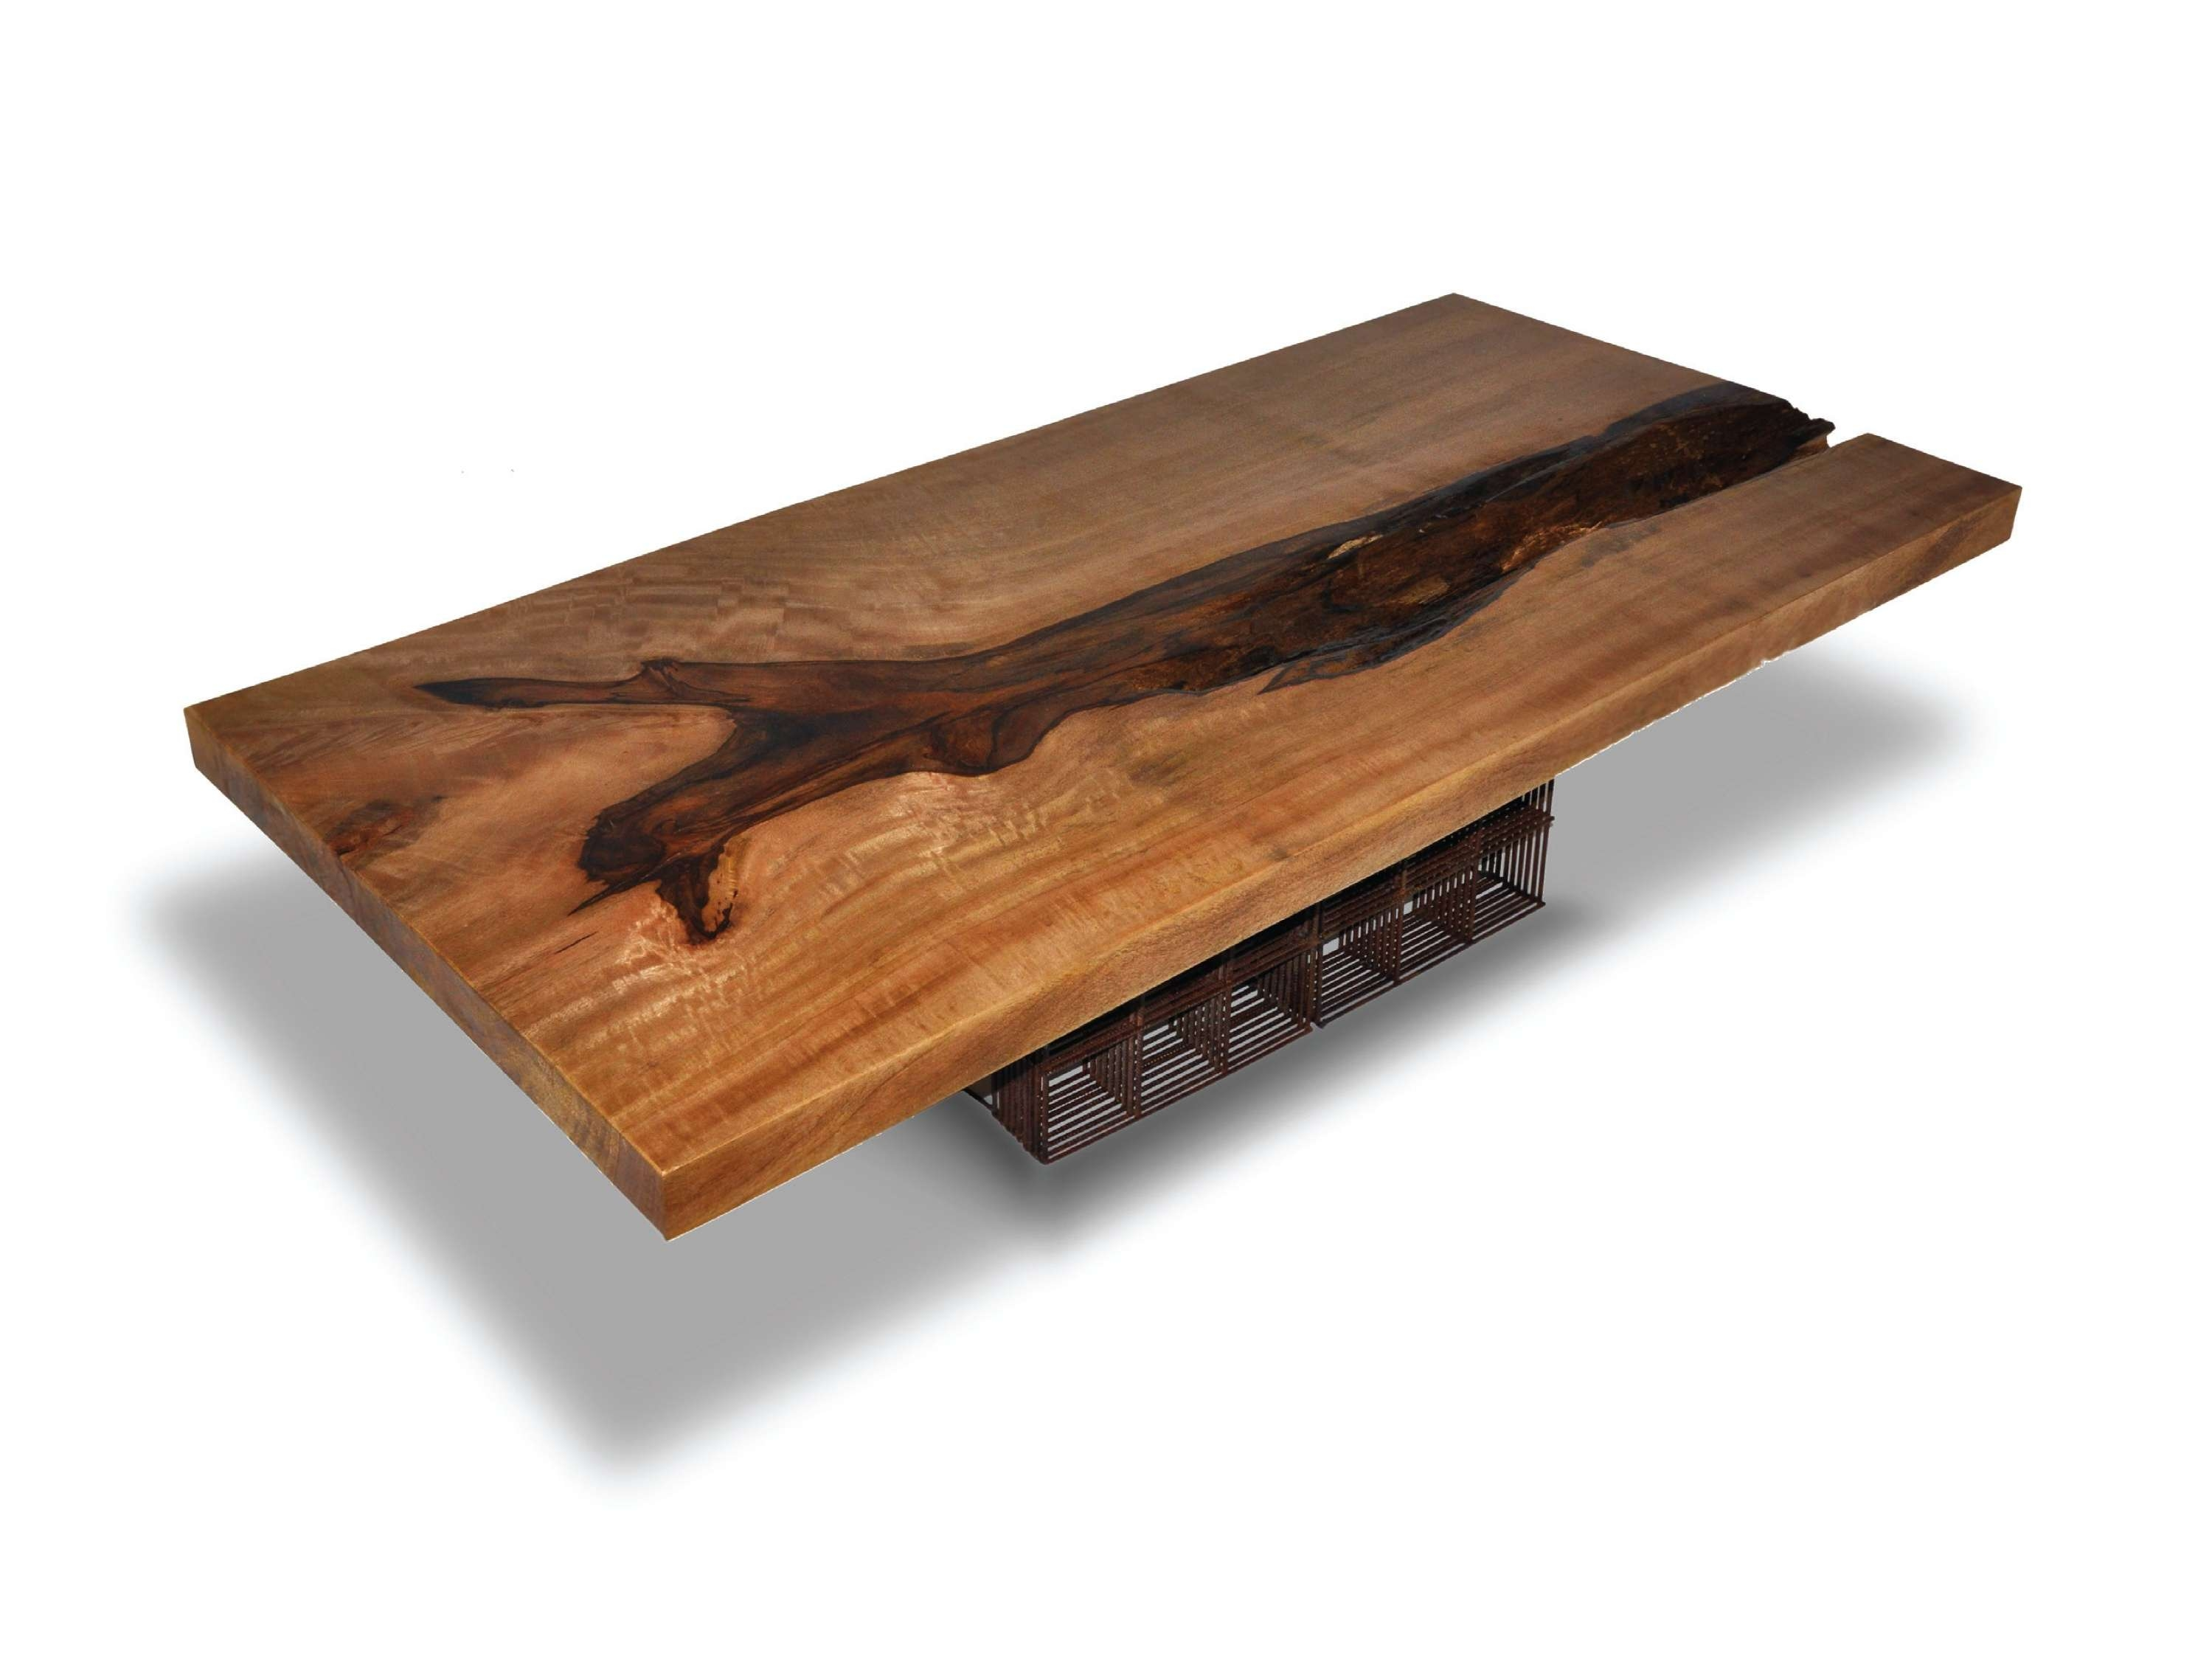 Most Recently Released Mango Wood Coffee Tables Intended For Riveting Maze Coffee Table Salvaged Mango Wood Industrial Organic (View 11 of 20)